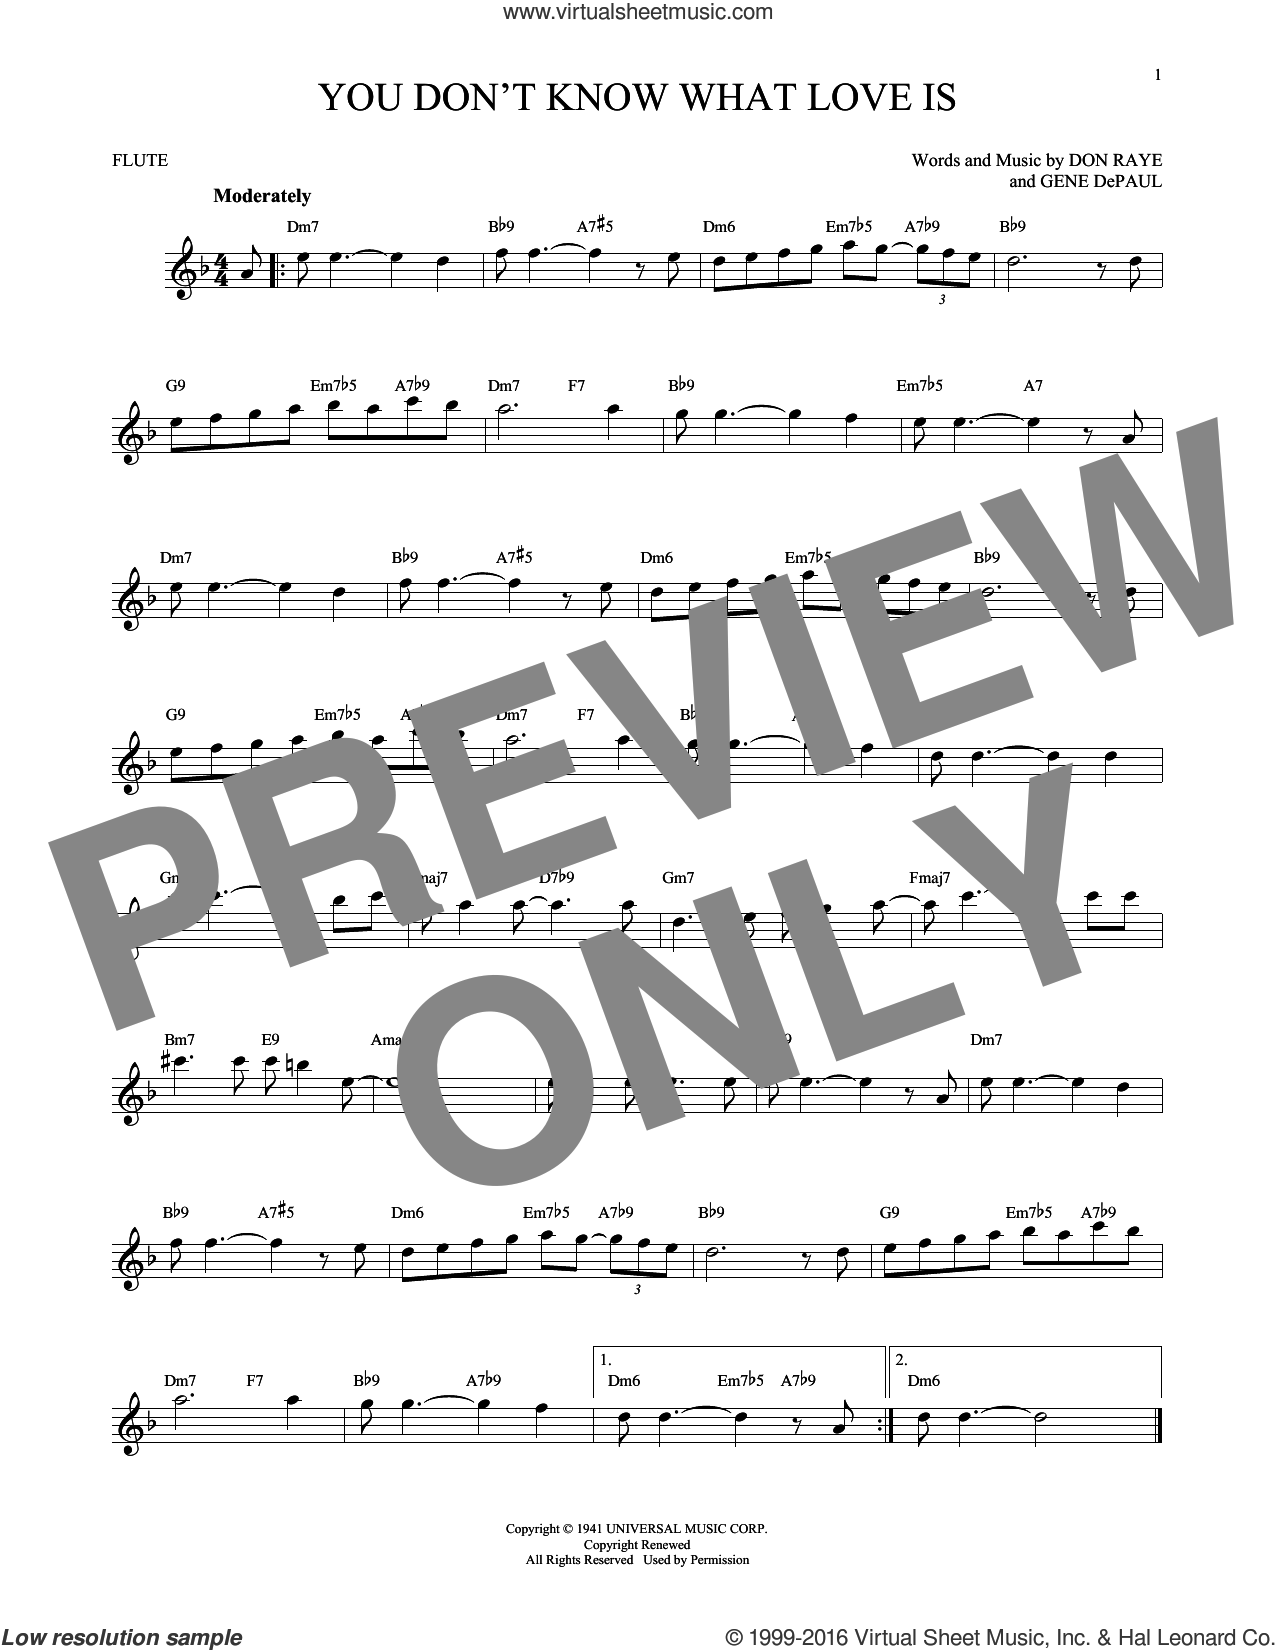 You Don't Know What Love Is sheet music for flute solo by Don Raye, Carol Bruce and Gene DePaul, intermediate skill level